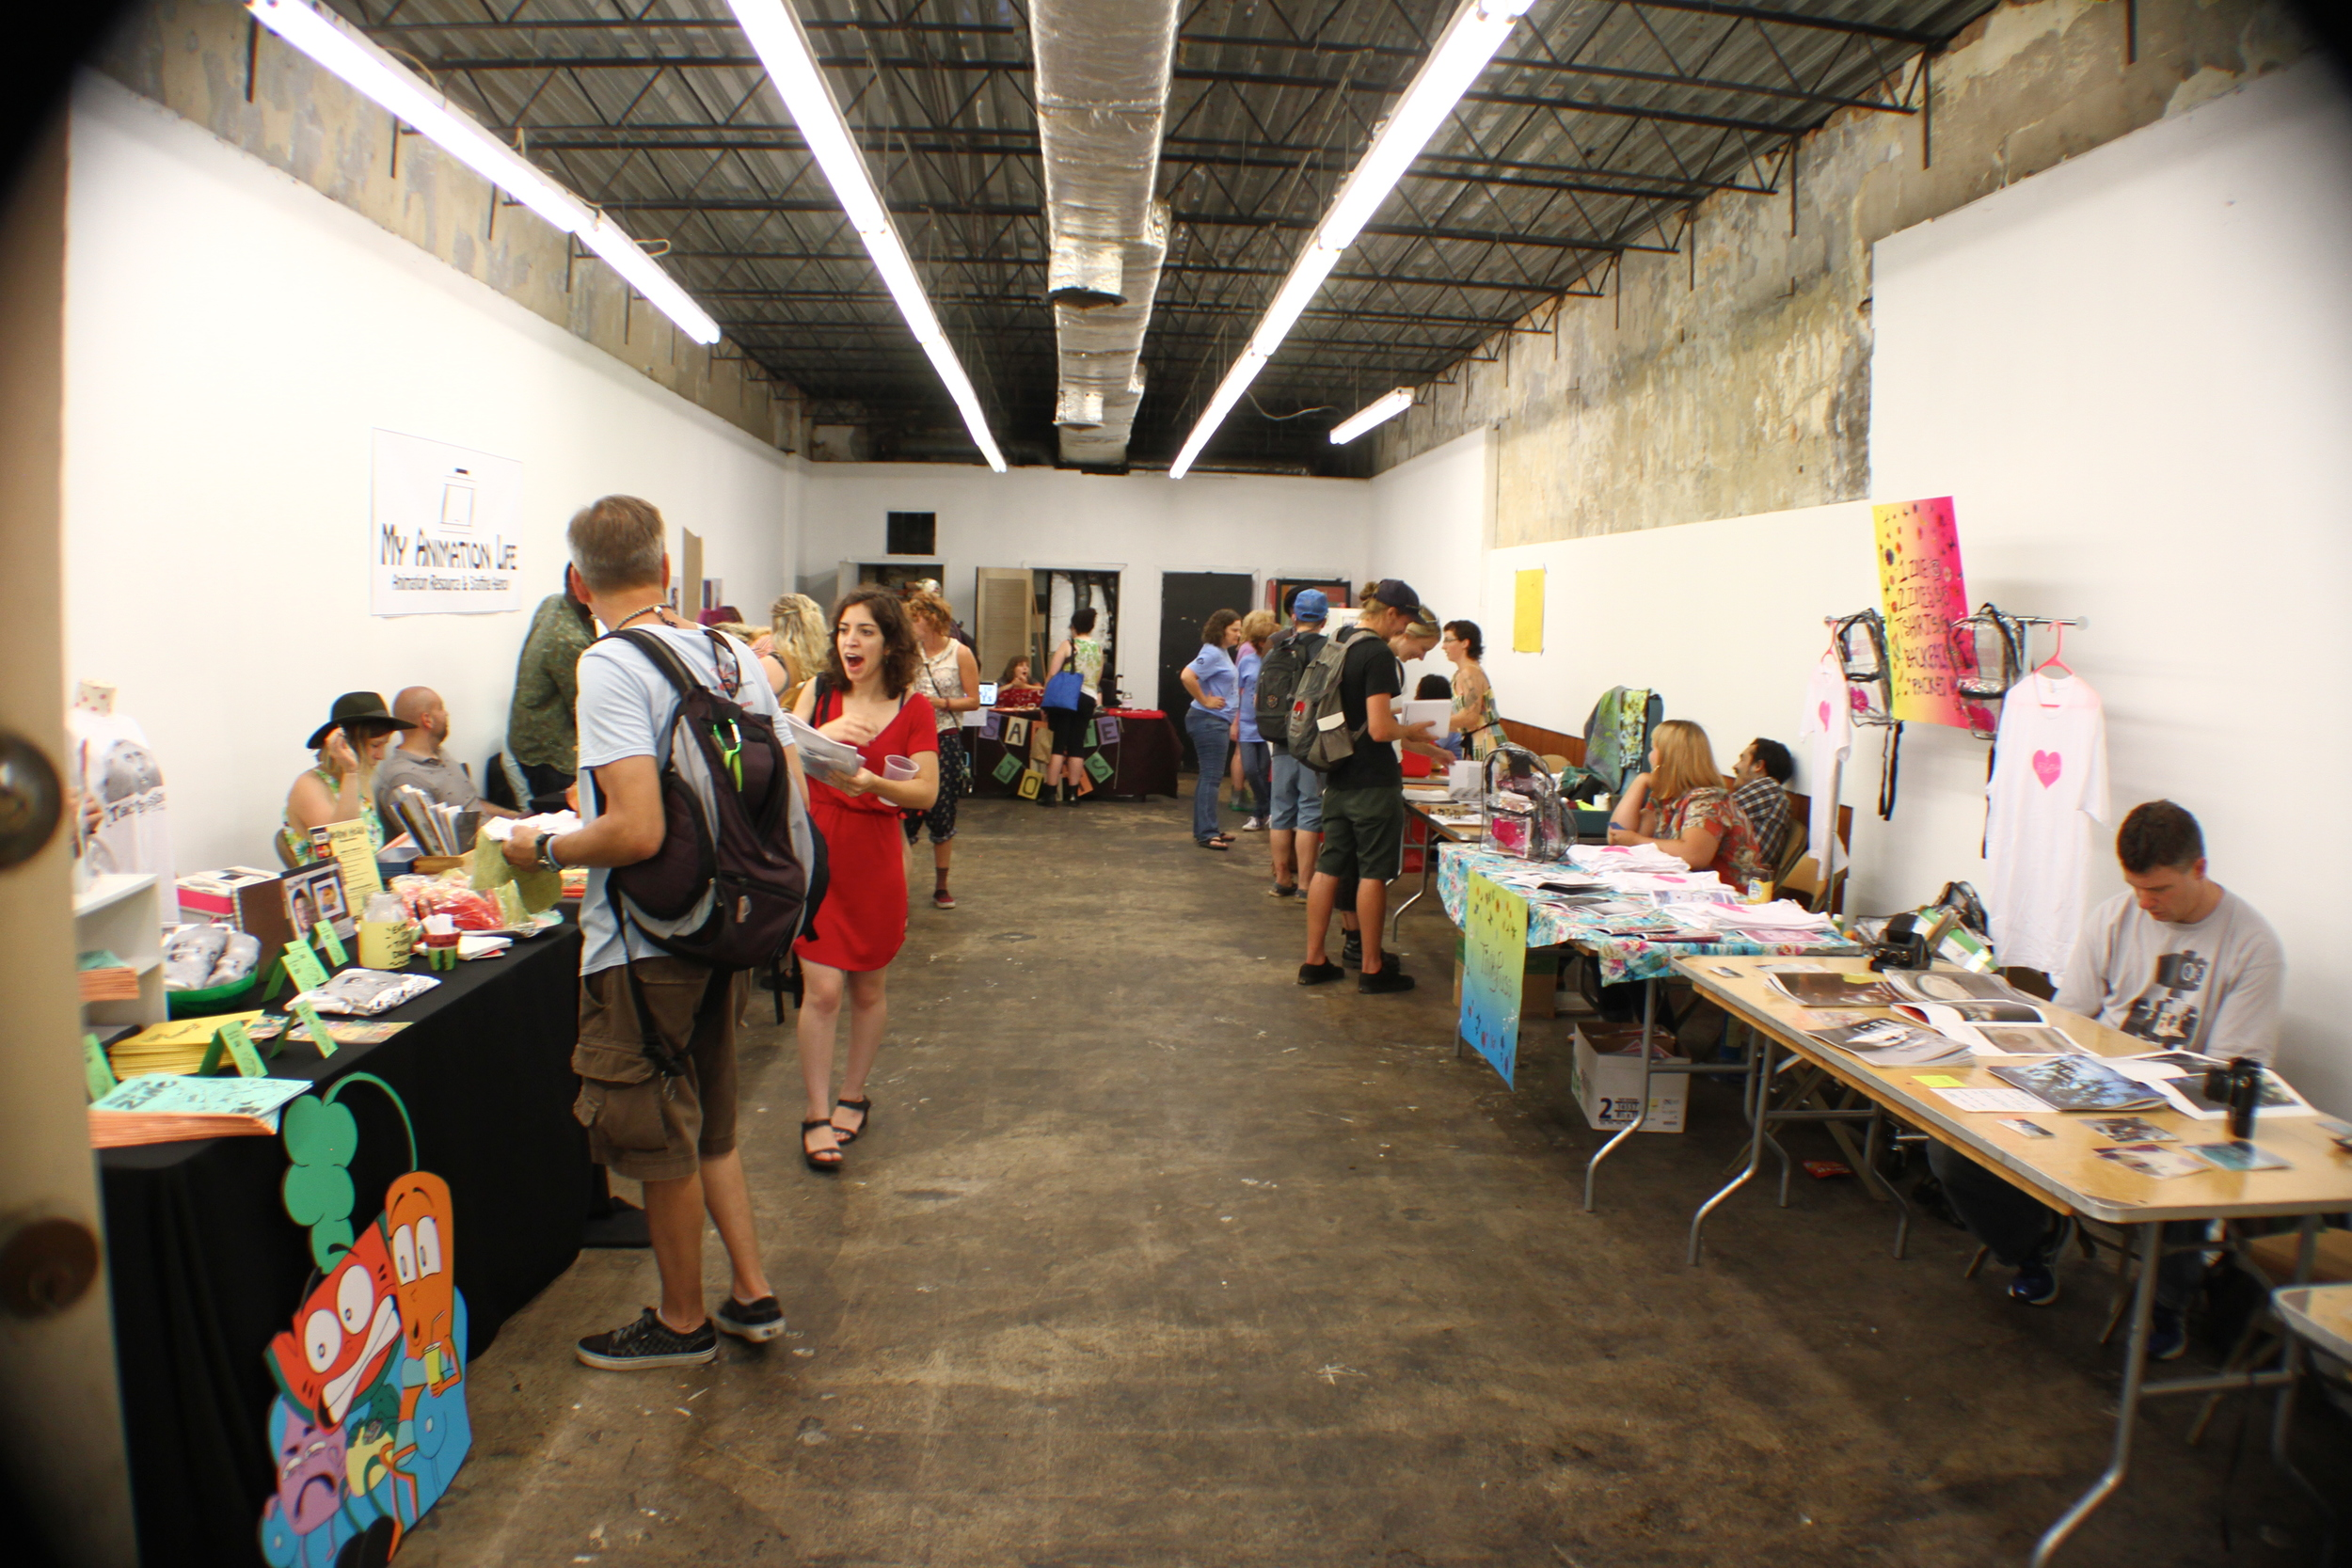 038 - ZineFest (Highlights).JPG